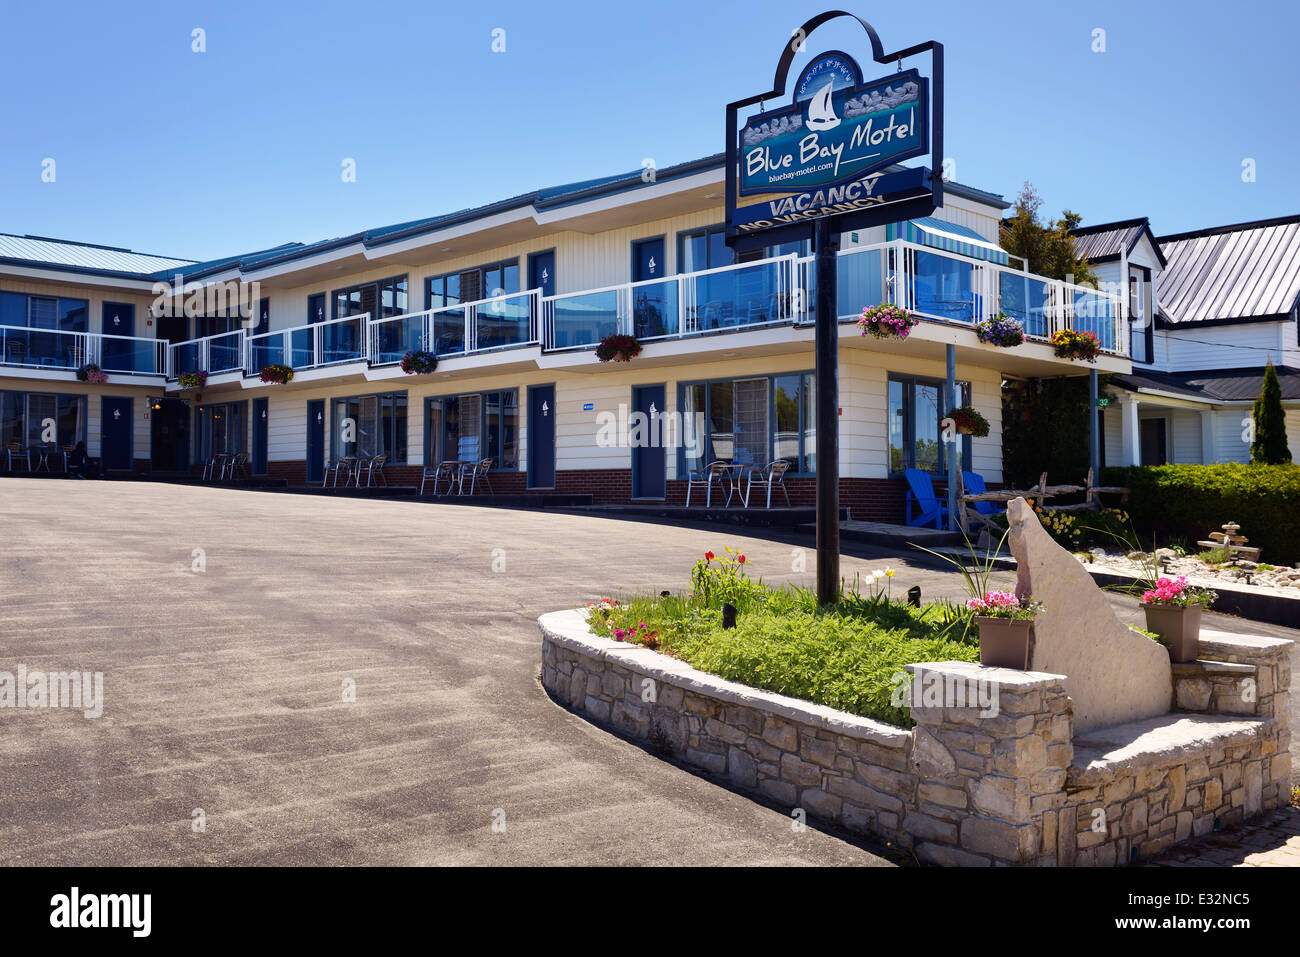 Blue Bay Motel in Tobermory, Ontario, Canada - Stock Image